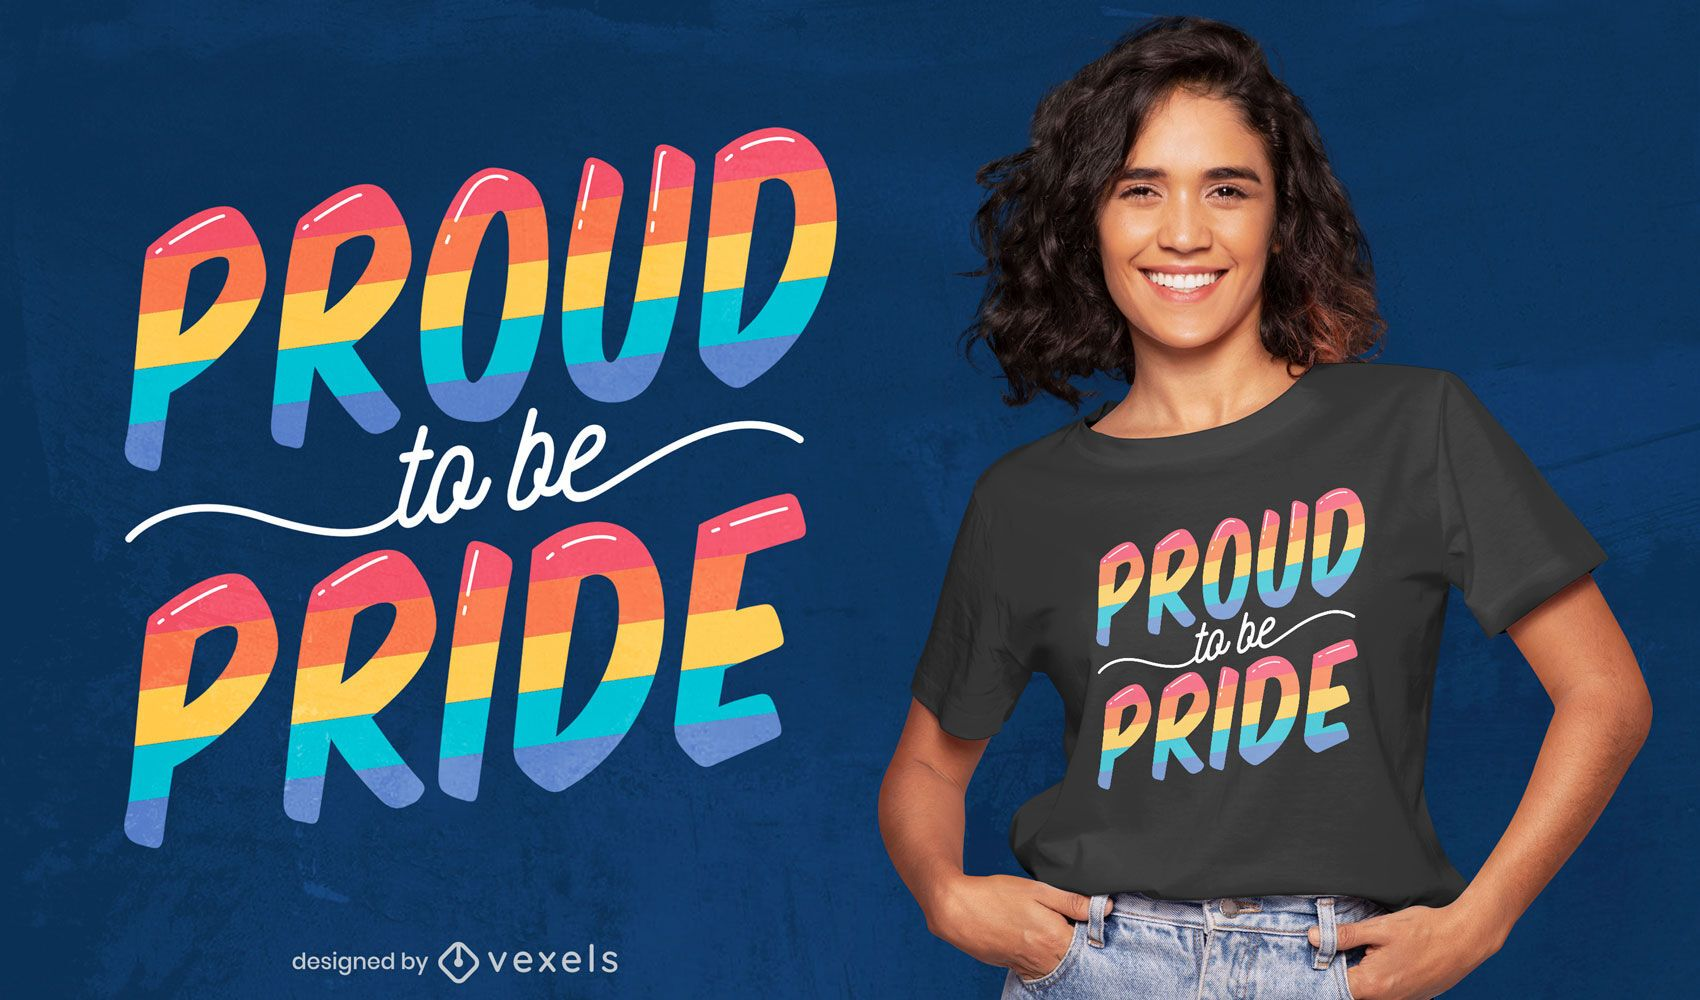 Proud to be pride t-shirt design